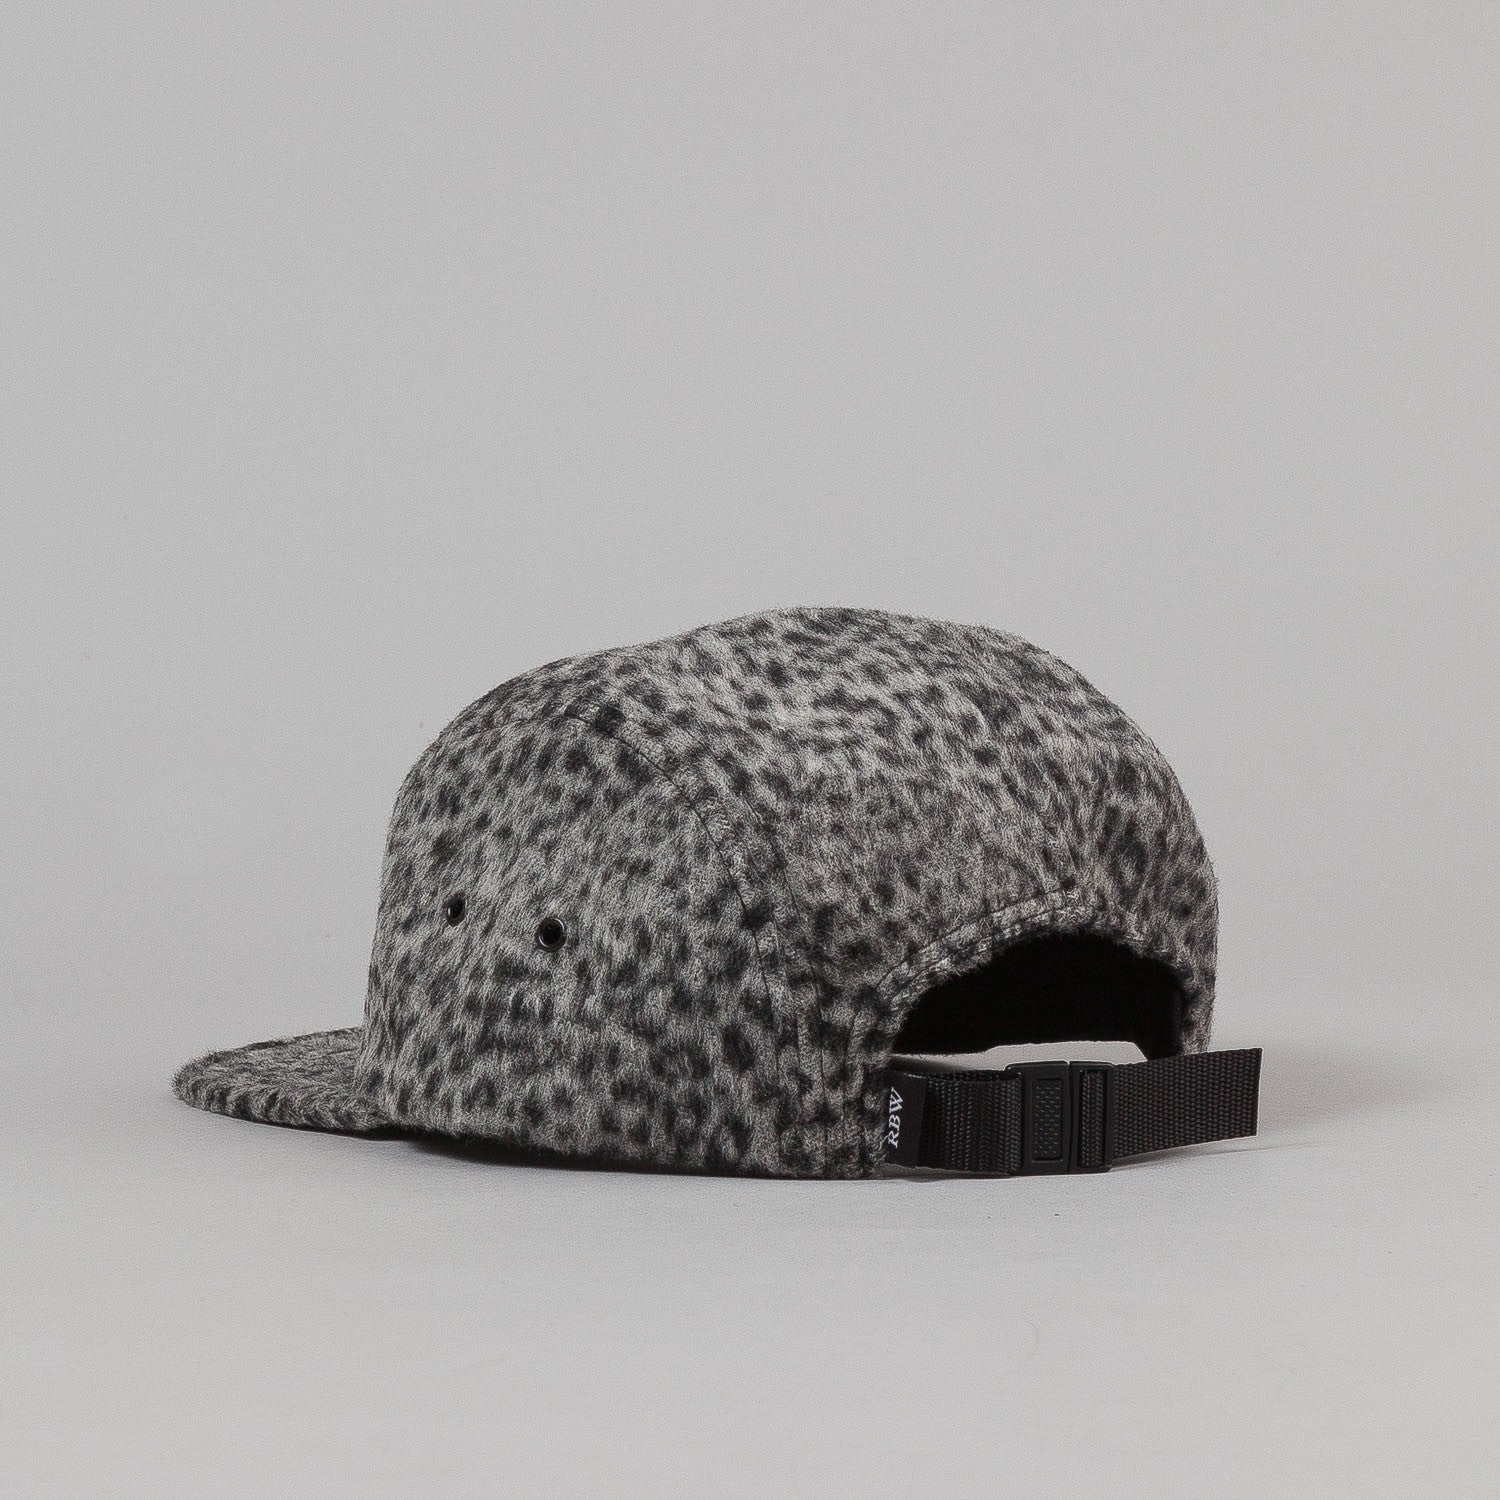 Raised By Wolves Algonquin Camp Cap - Leopard Wool Grey